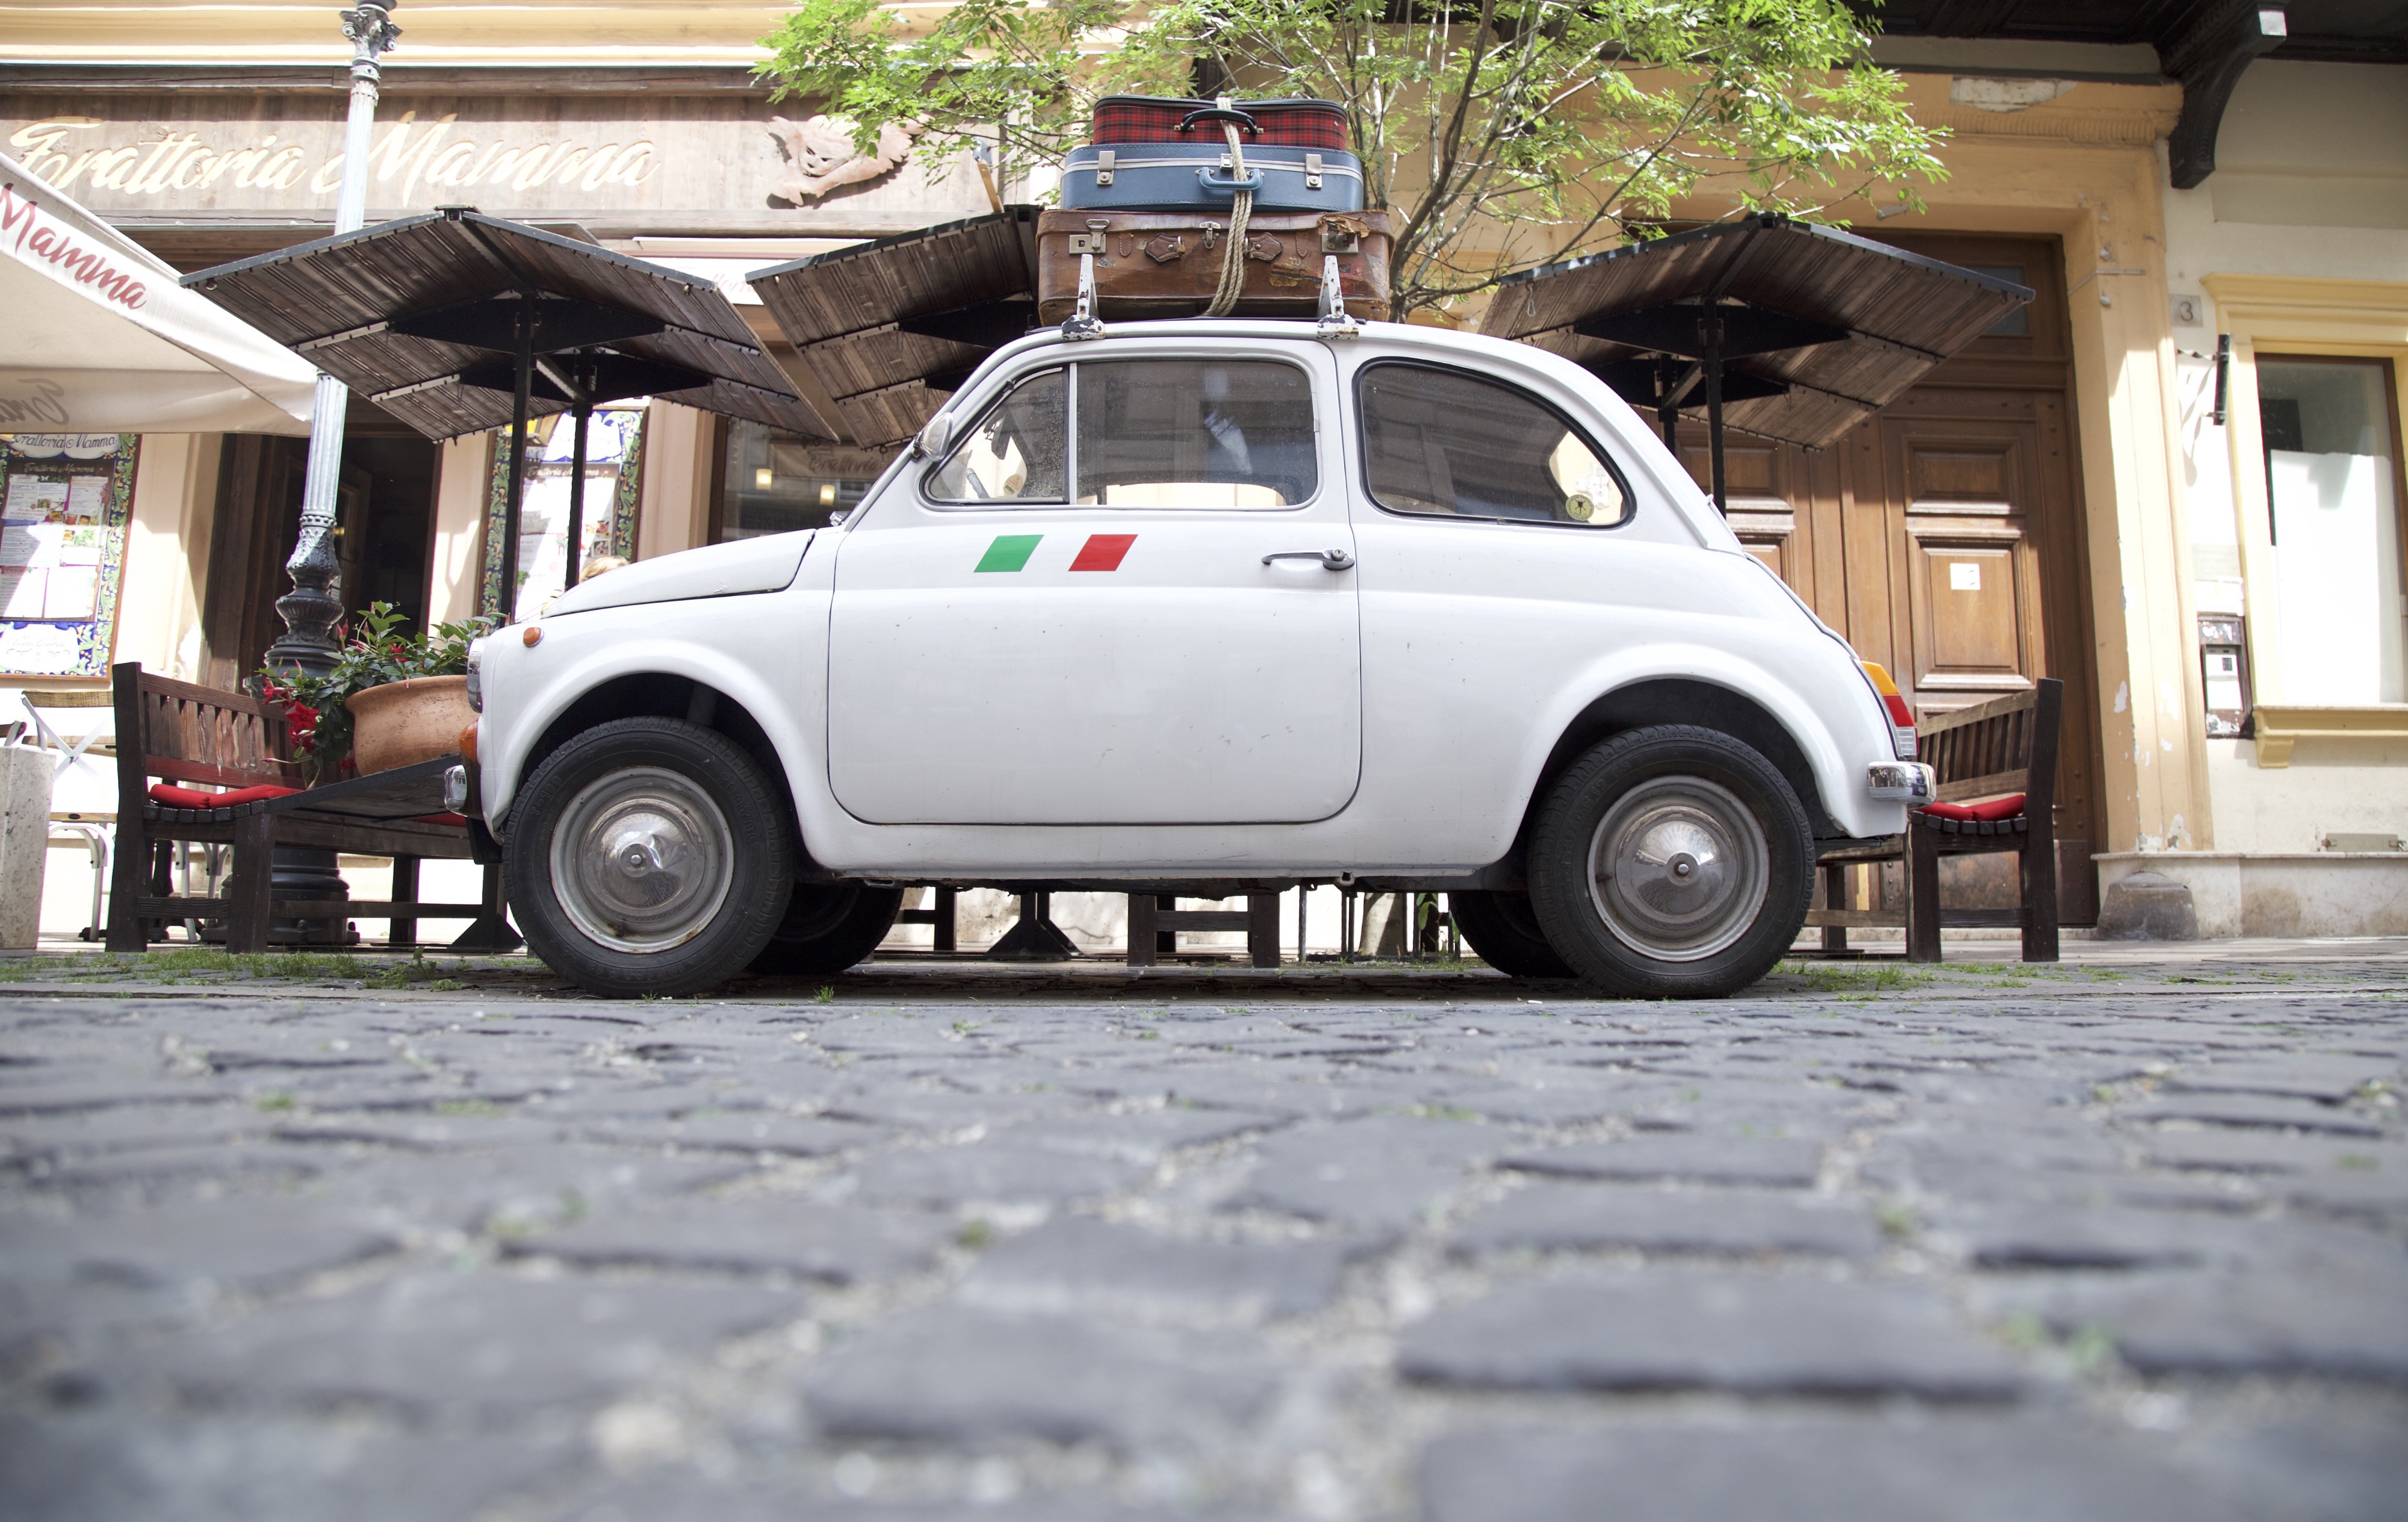 old tiny Fiat with suitcase attached on top on a cobblestone street and an Italian flag sticker